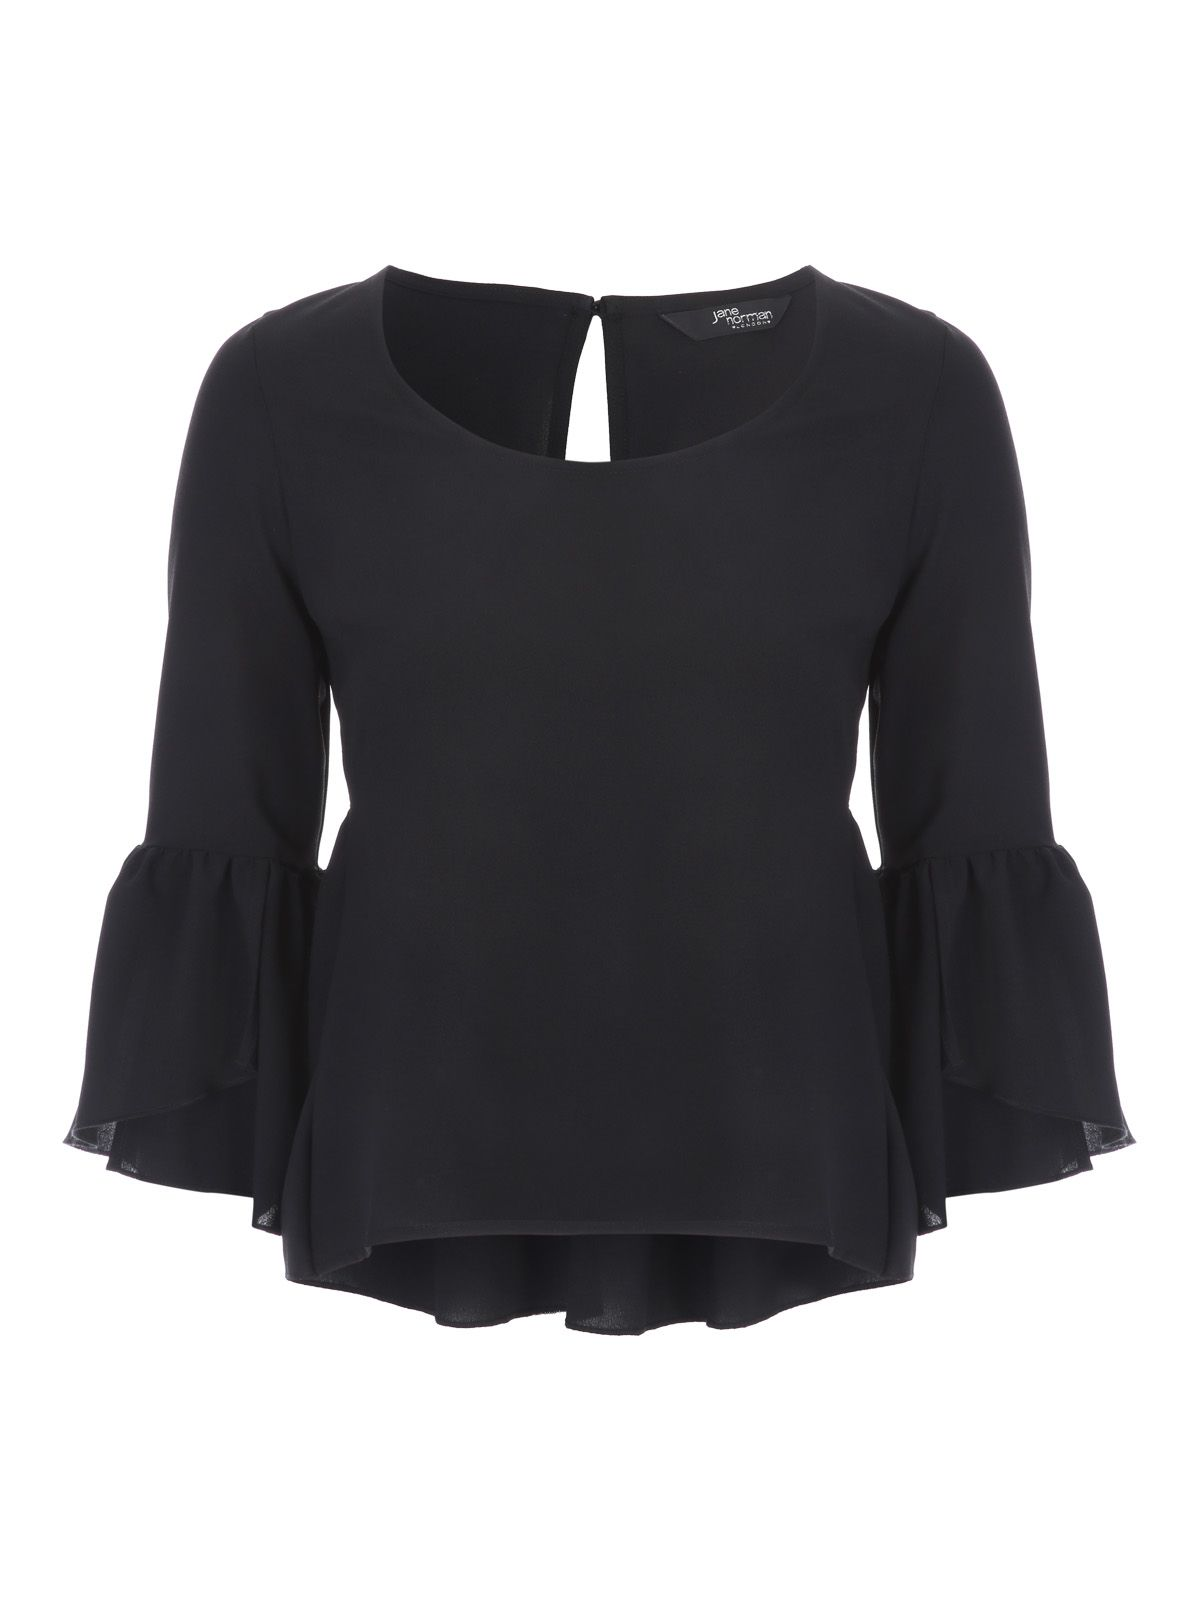 Jane Norman Black Frill Sleeve Cut Out Top, Black